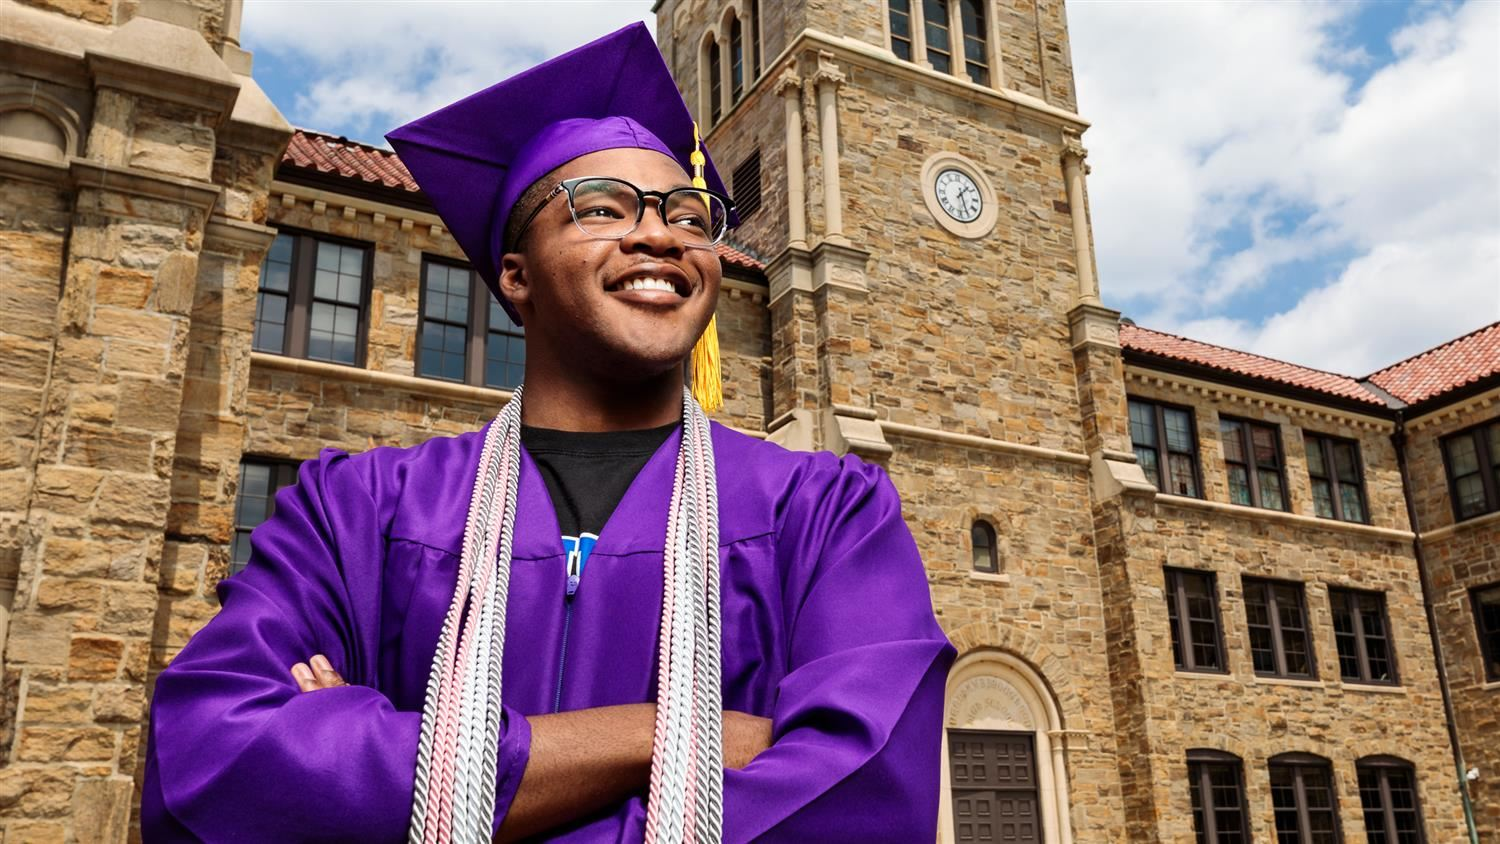 Broughton graduate Brevyn Belfield in cap and gown